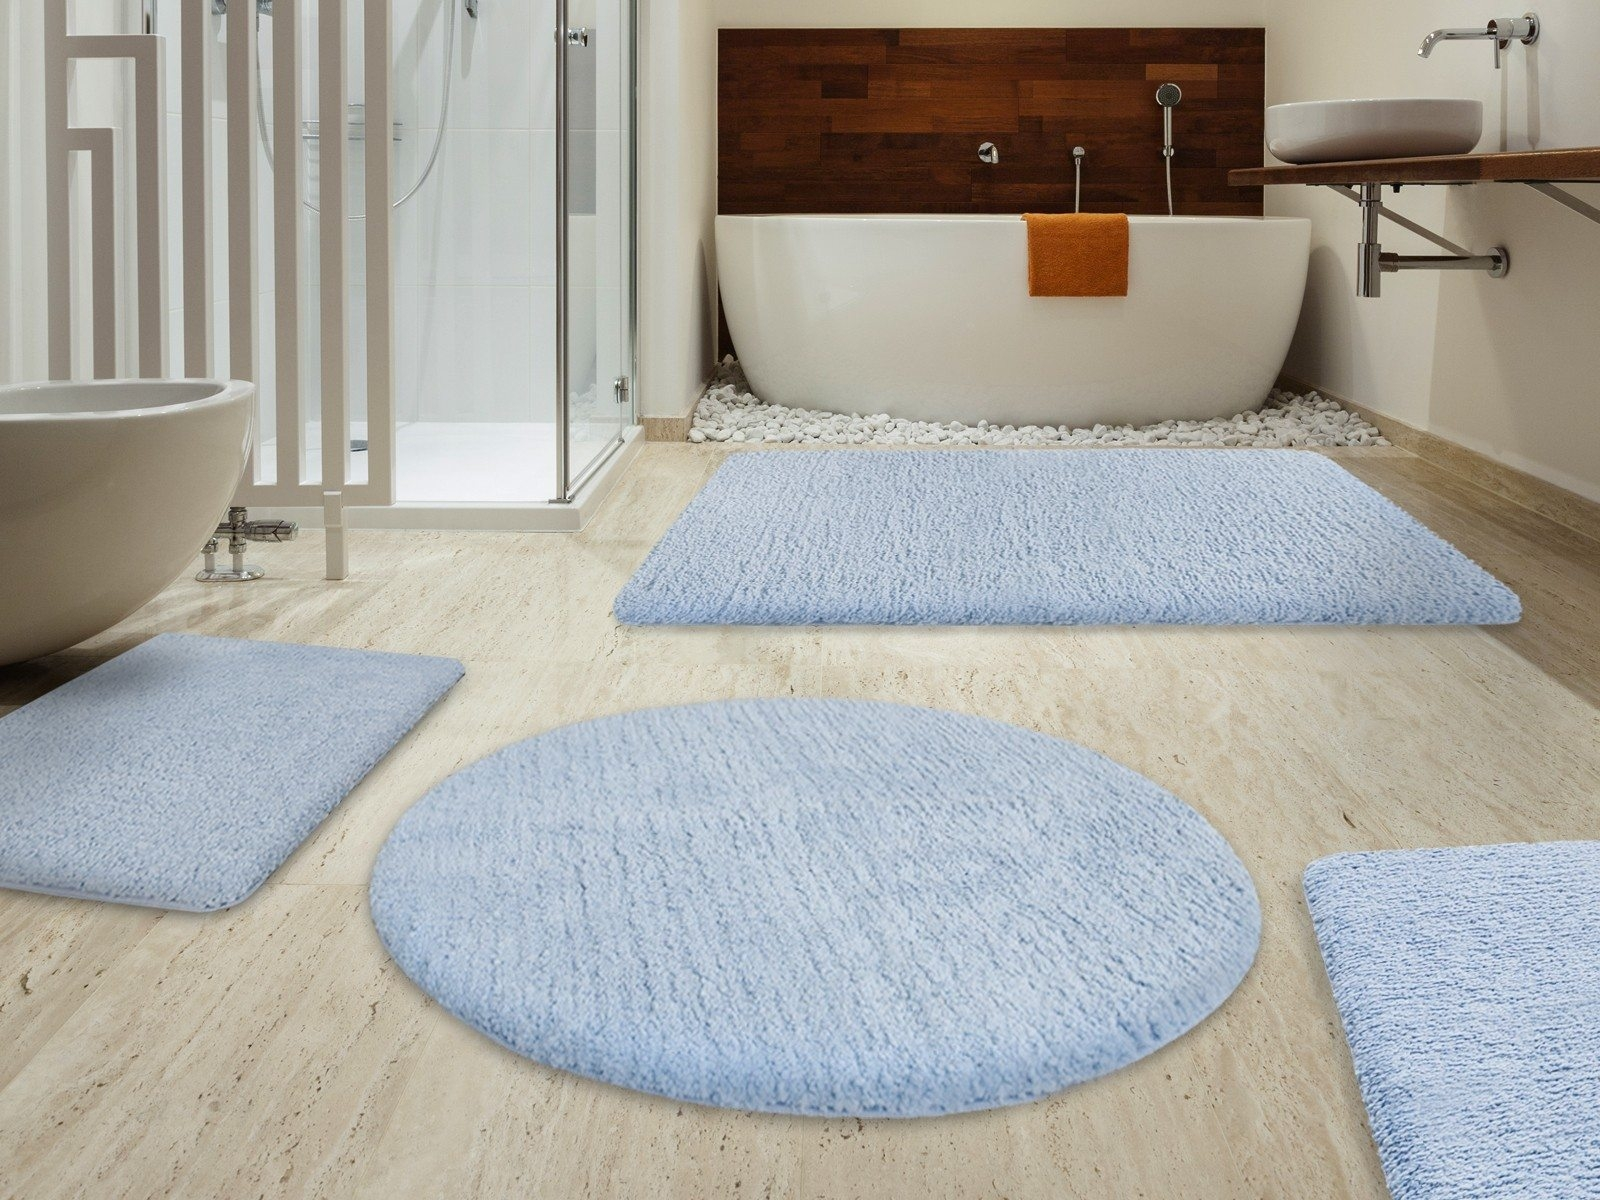 Light Blue Bathroom Rug Sets